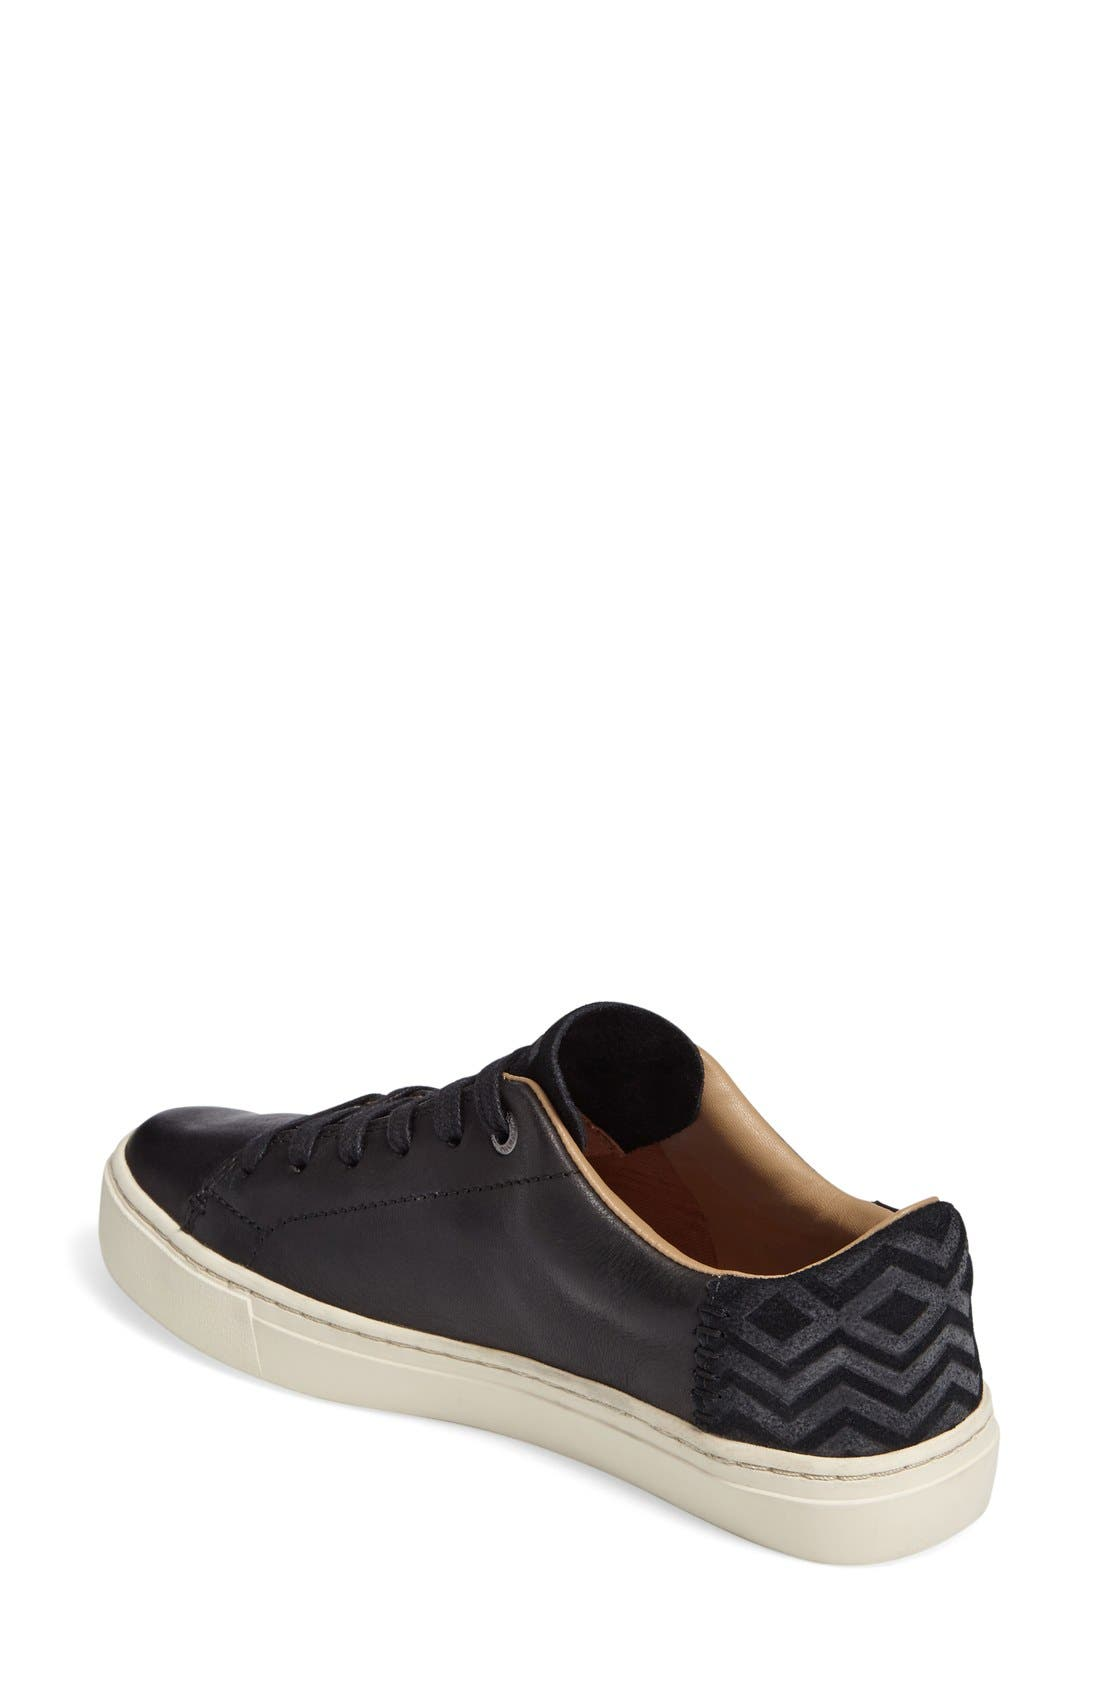 TOMS,                             Lenox Sneaker,                             Alternate thumbnail 3, color,                             001